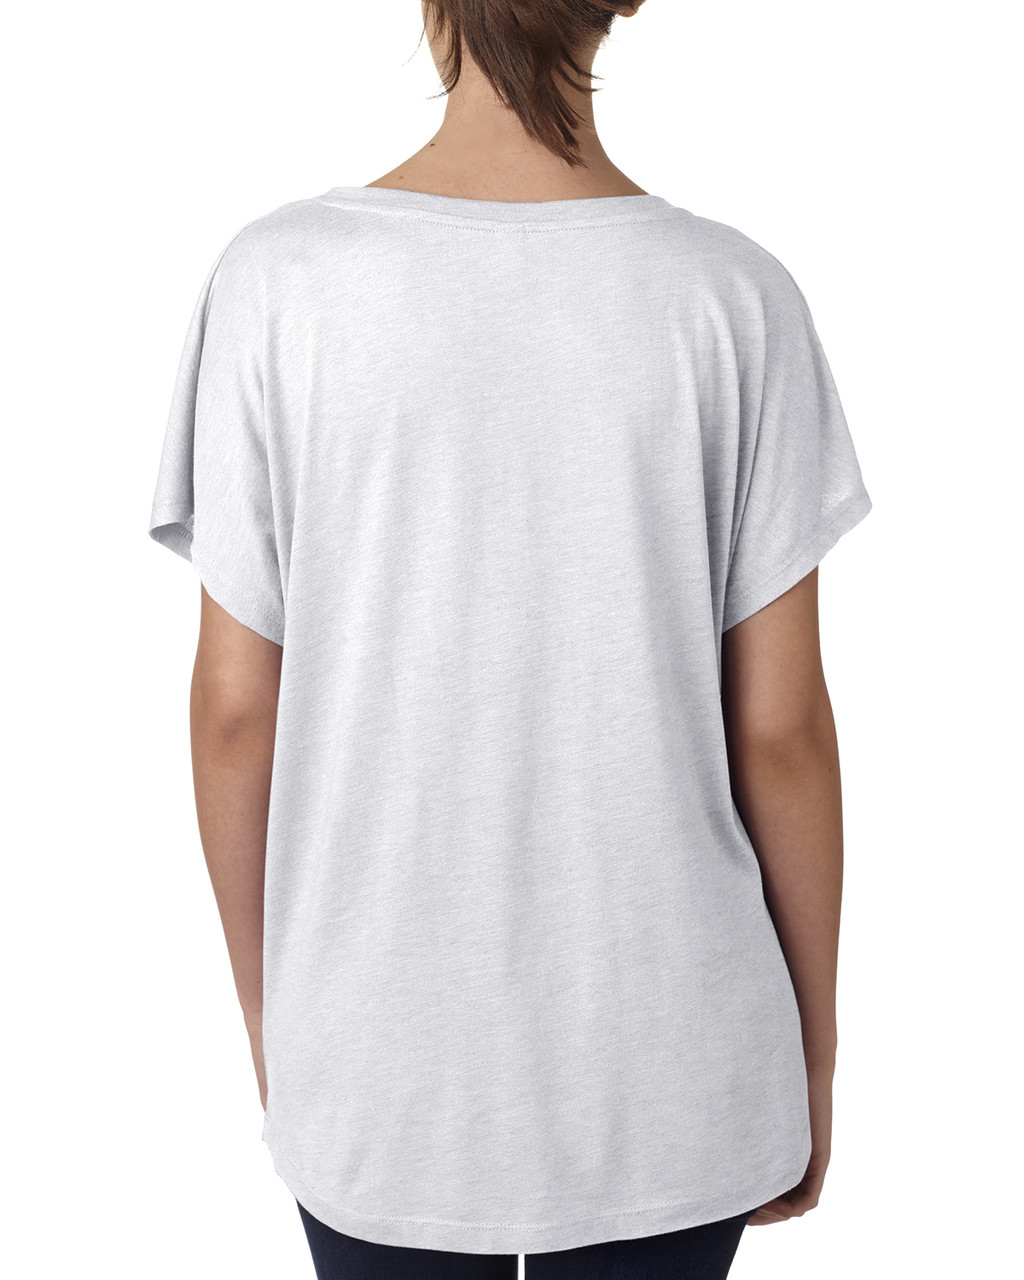 Heather White, Back -  6760 Next Level Ladies' Triblend Dolman Shirt | BlankClothing.ca